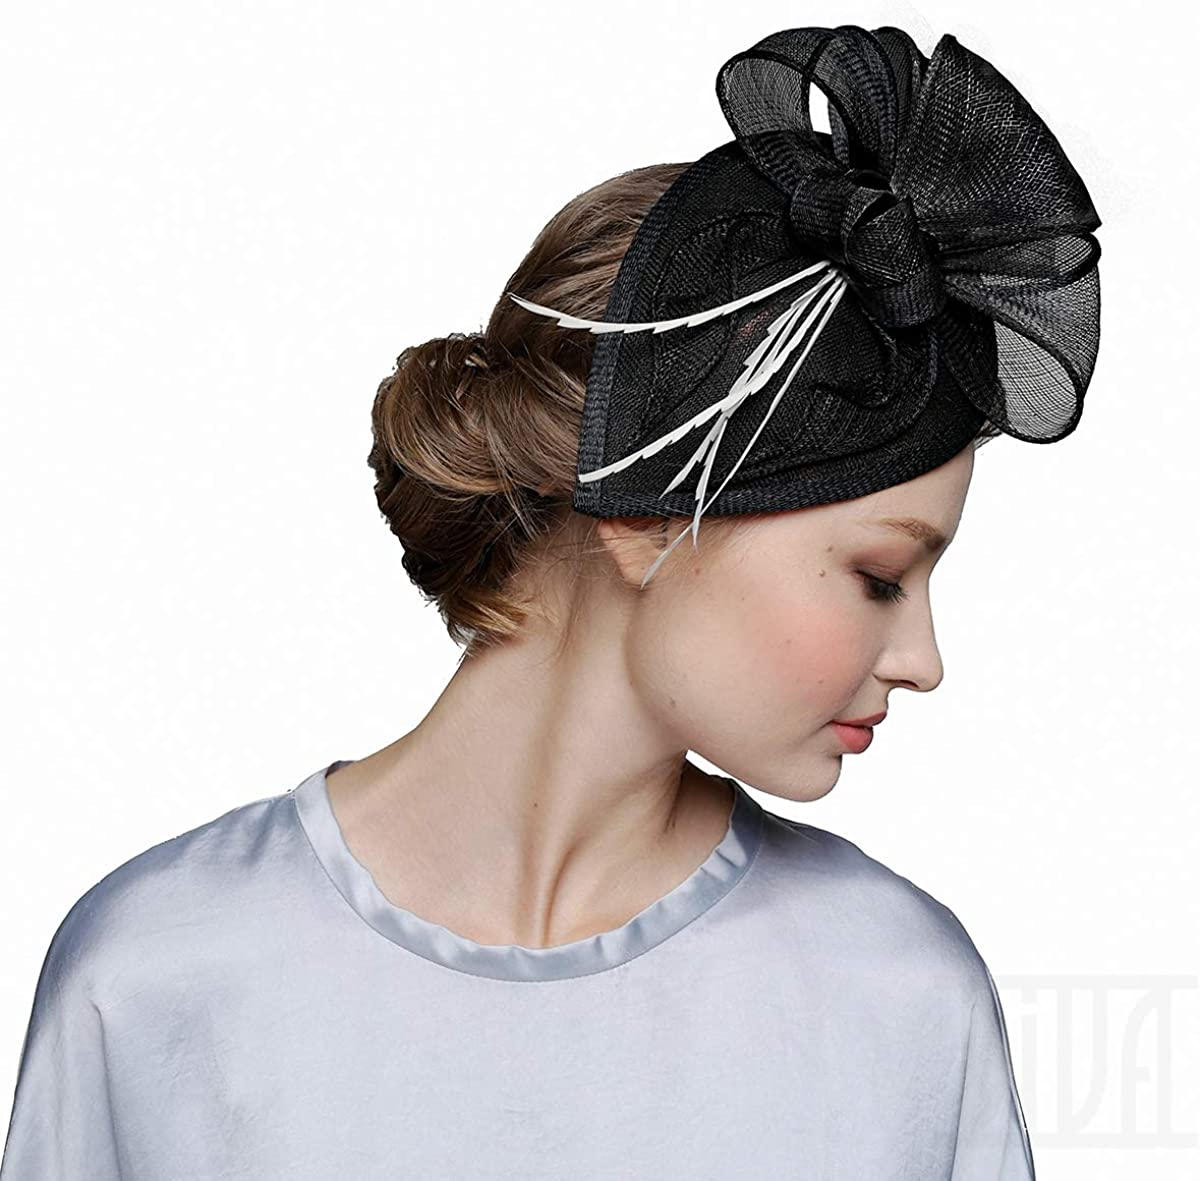 Black Fascinator Hat for Women Regular Recommended store Tea Wedding Church Derby Party Co